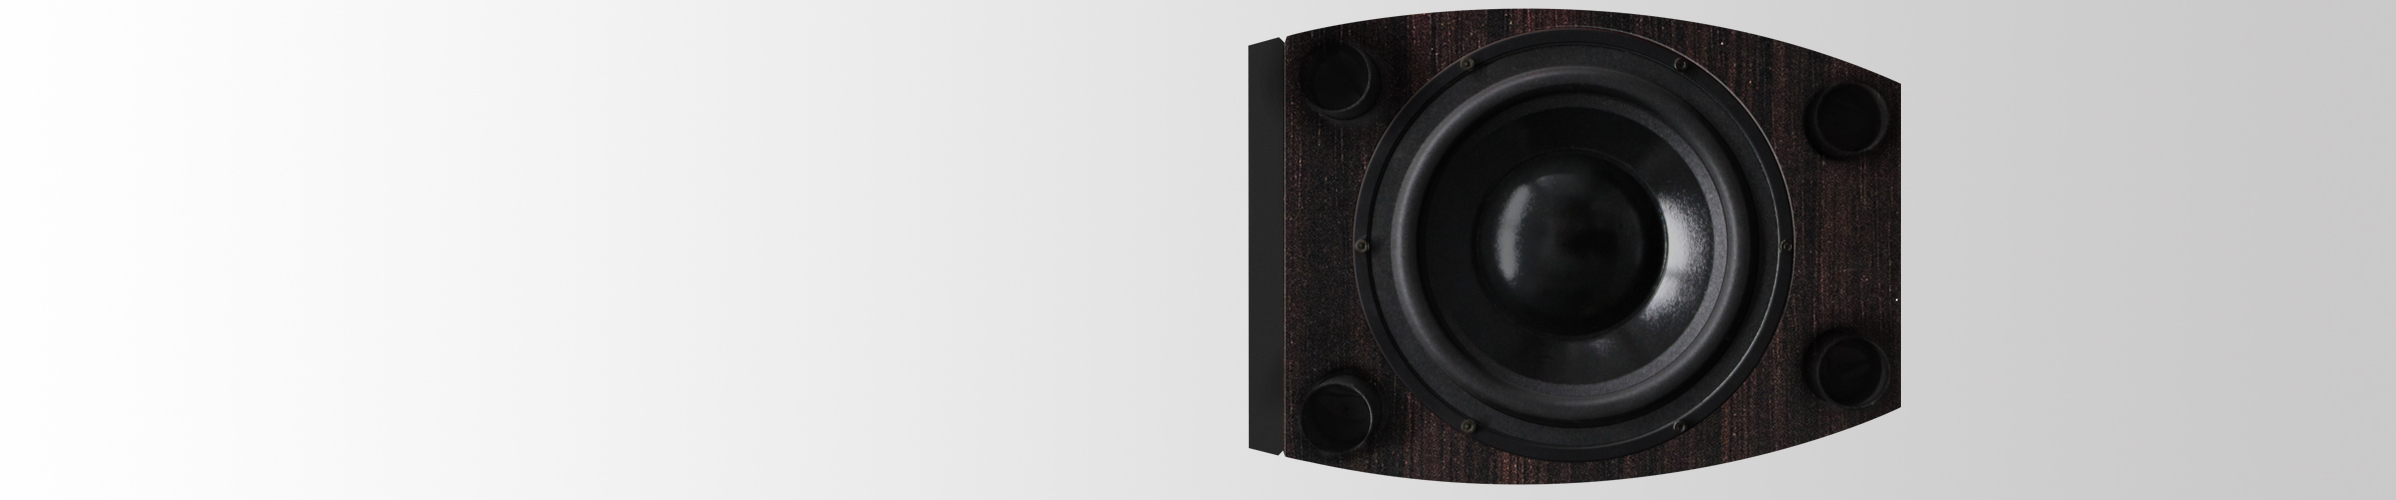 XL70RXS-DW-KIT speaker down-firing subwoofer